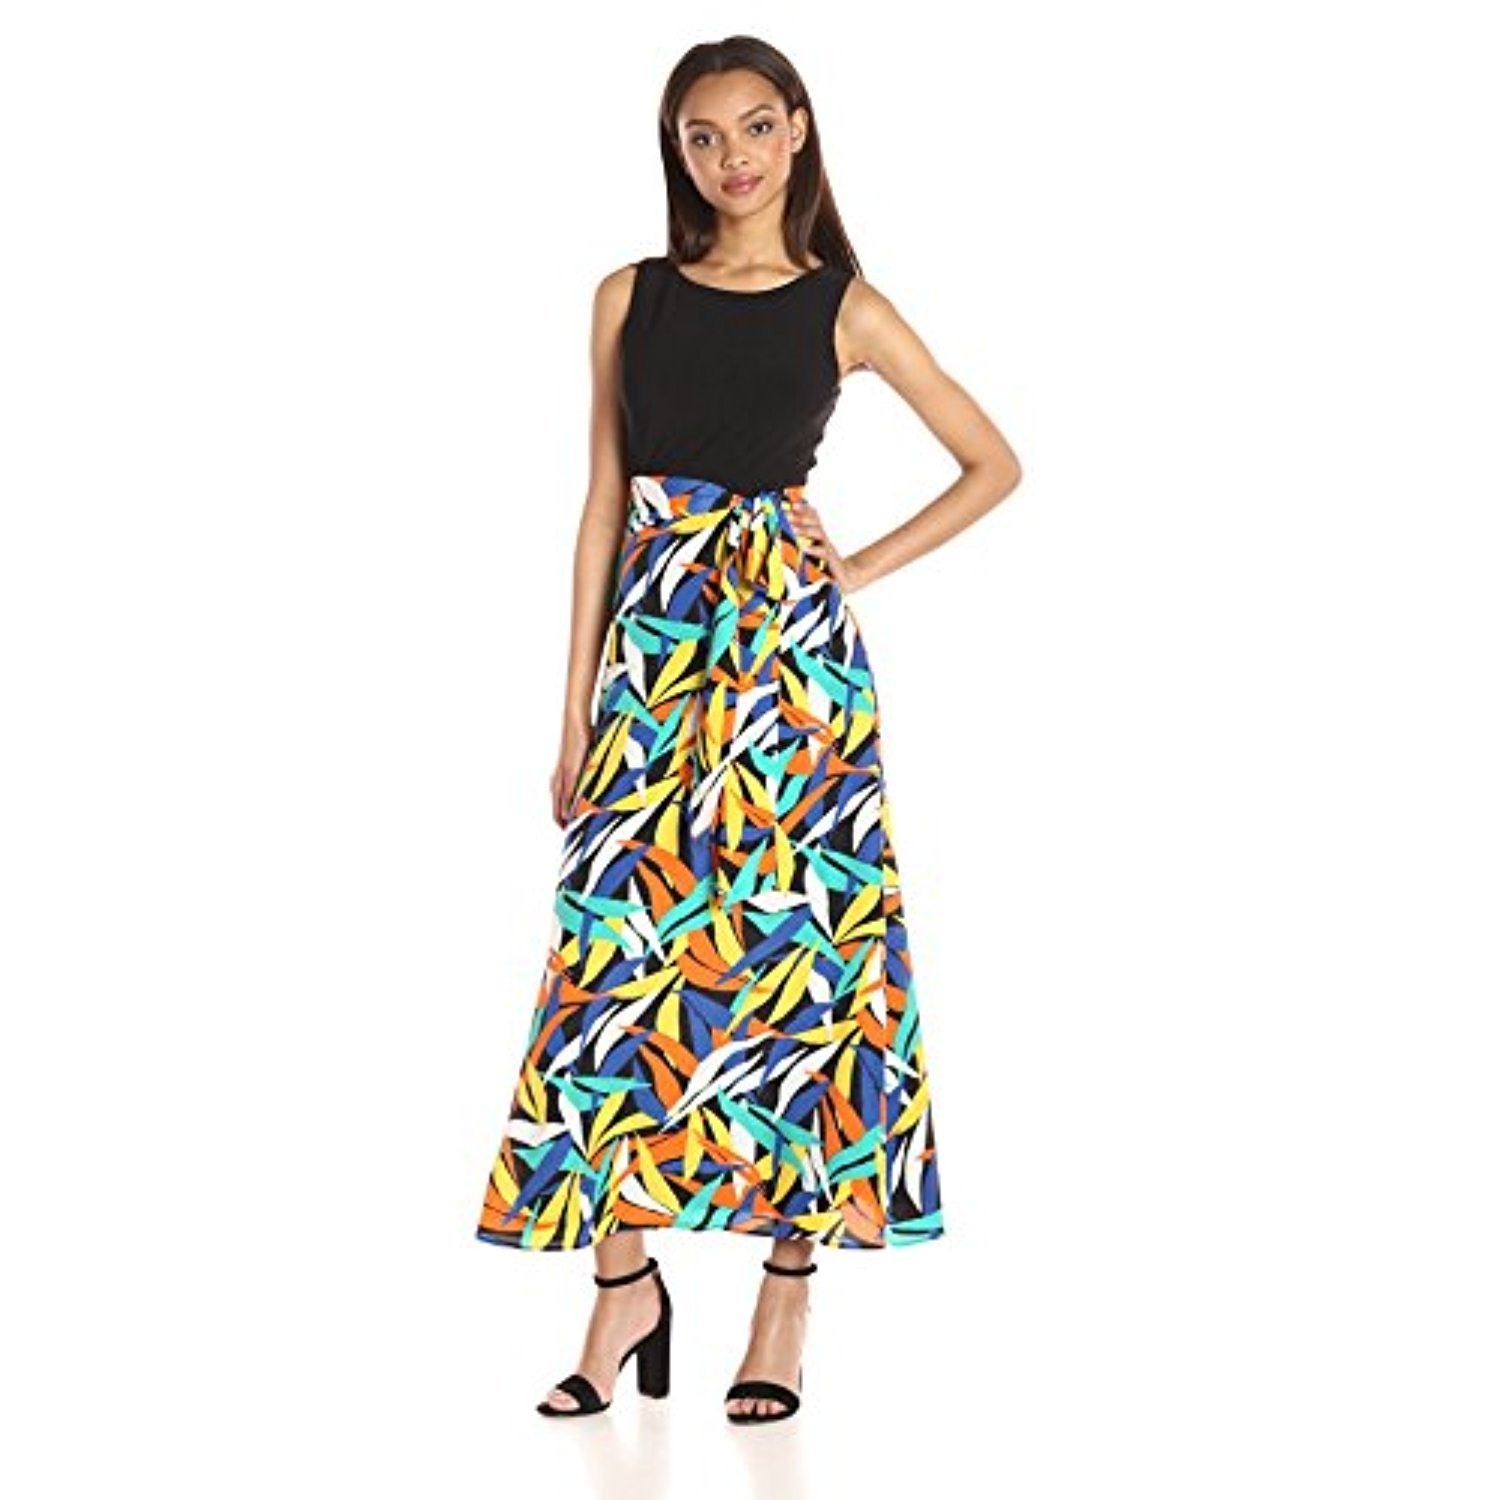 Nine West Womens Maxi Length Dress with Tie at Waist